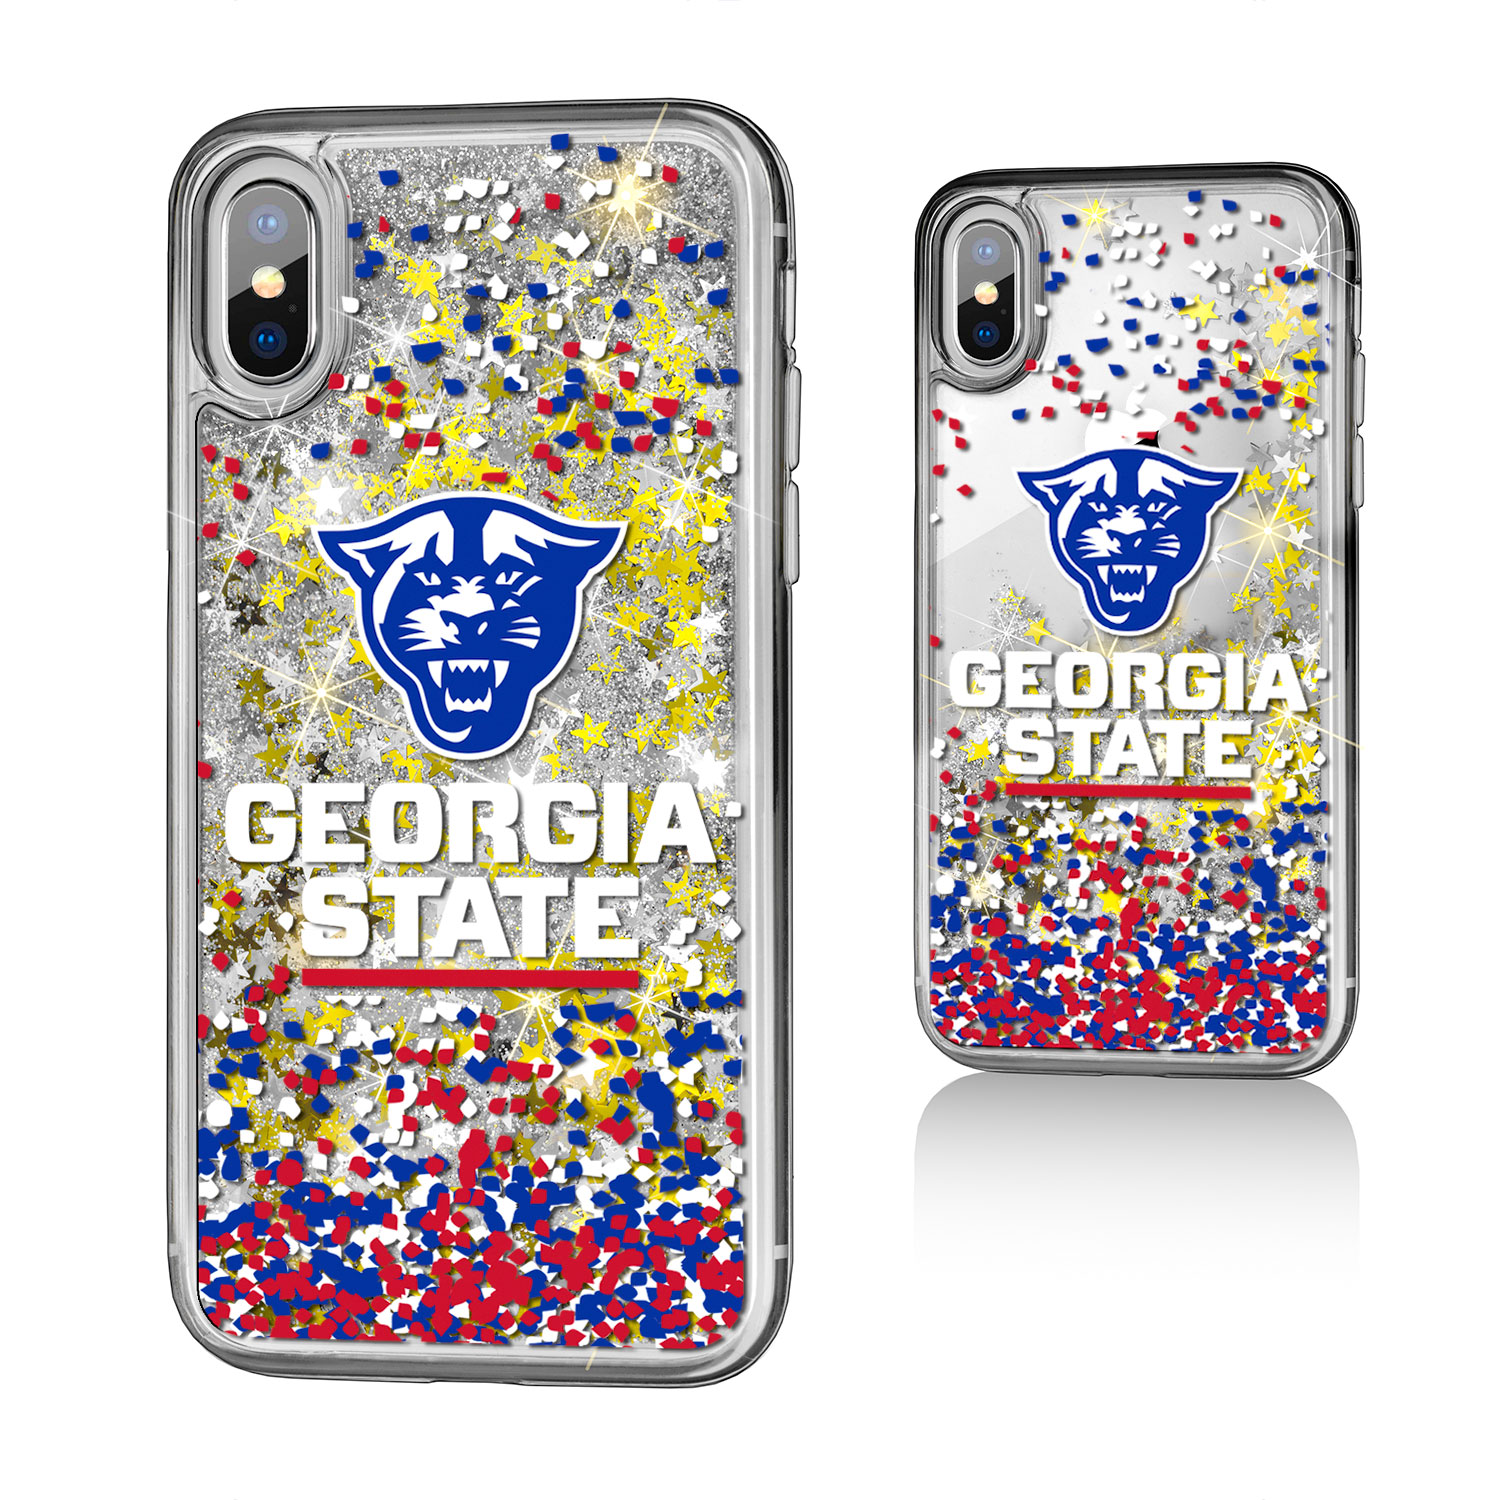 GSU Georgia State Panthers Confetti Glitter Case for iPhone X